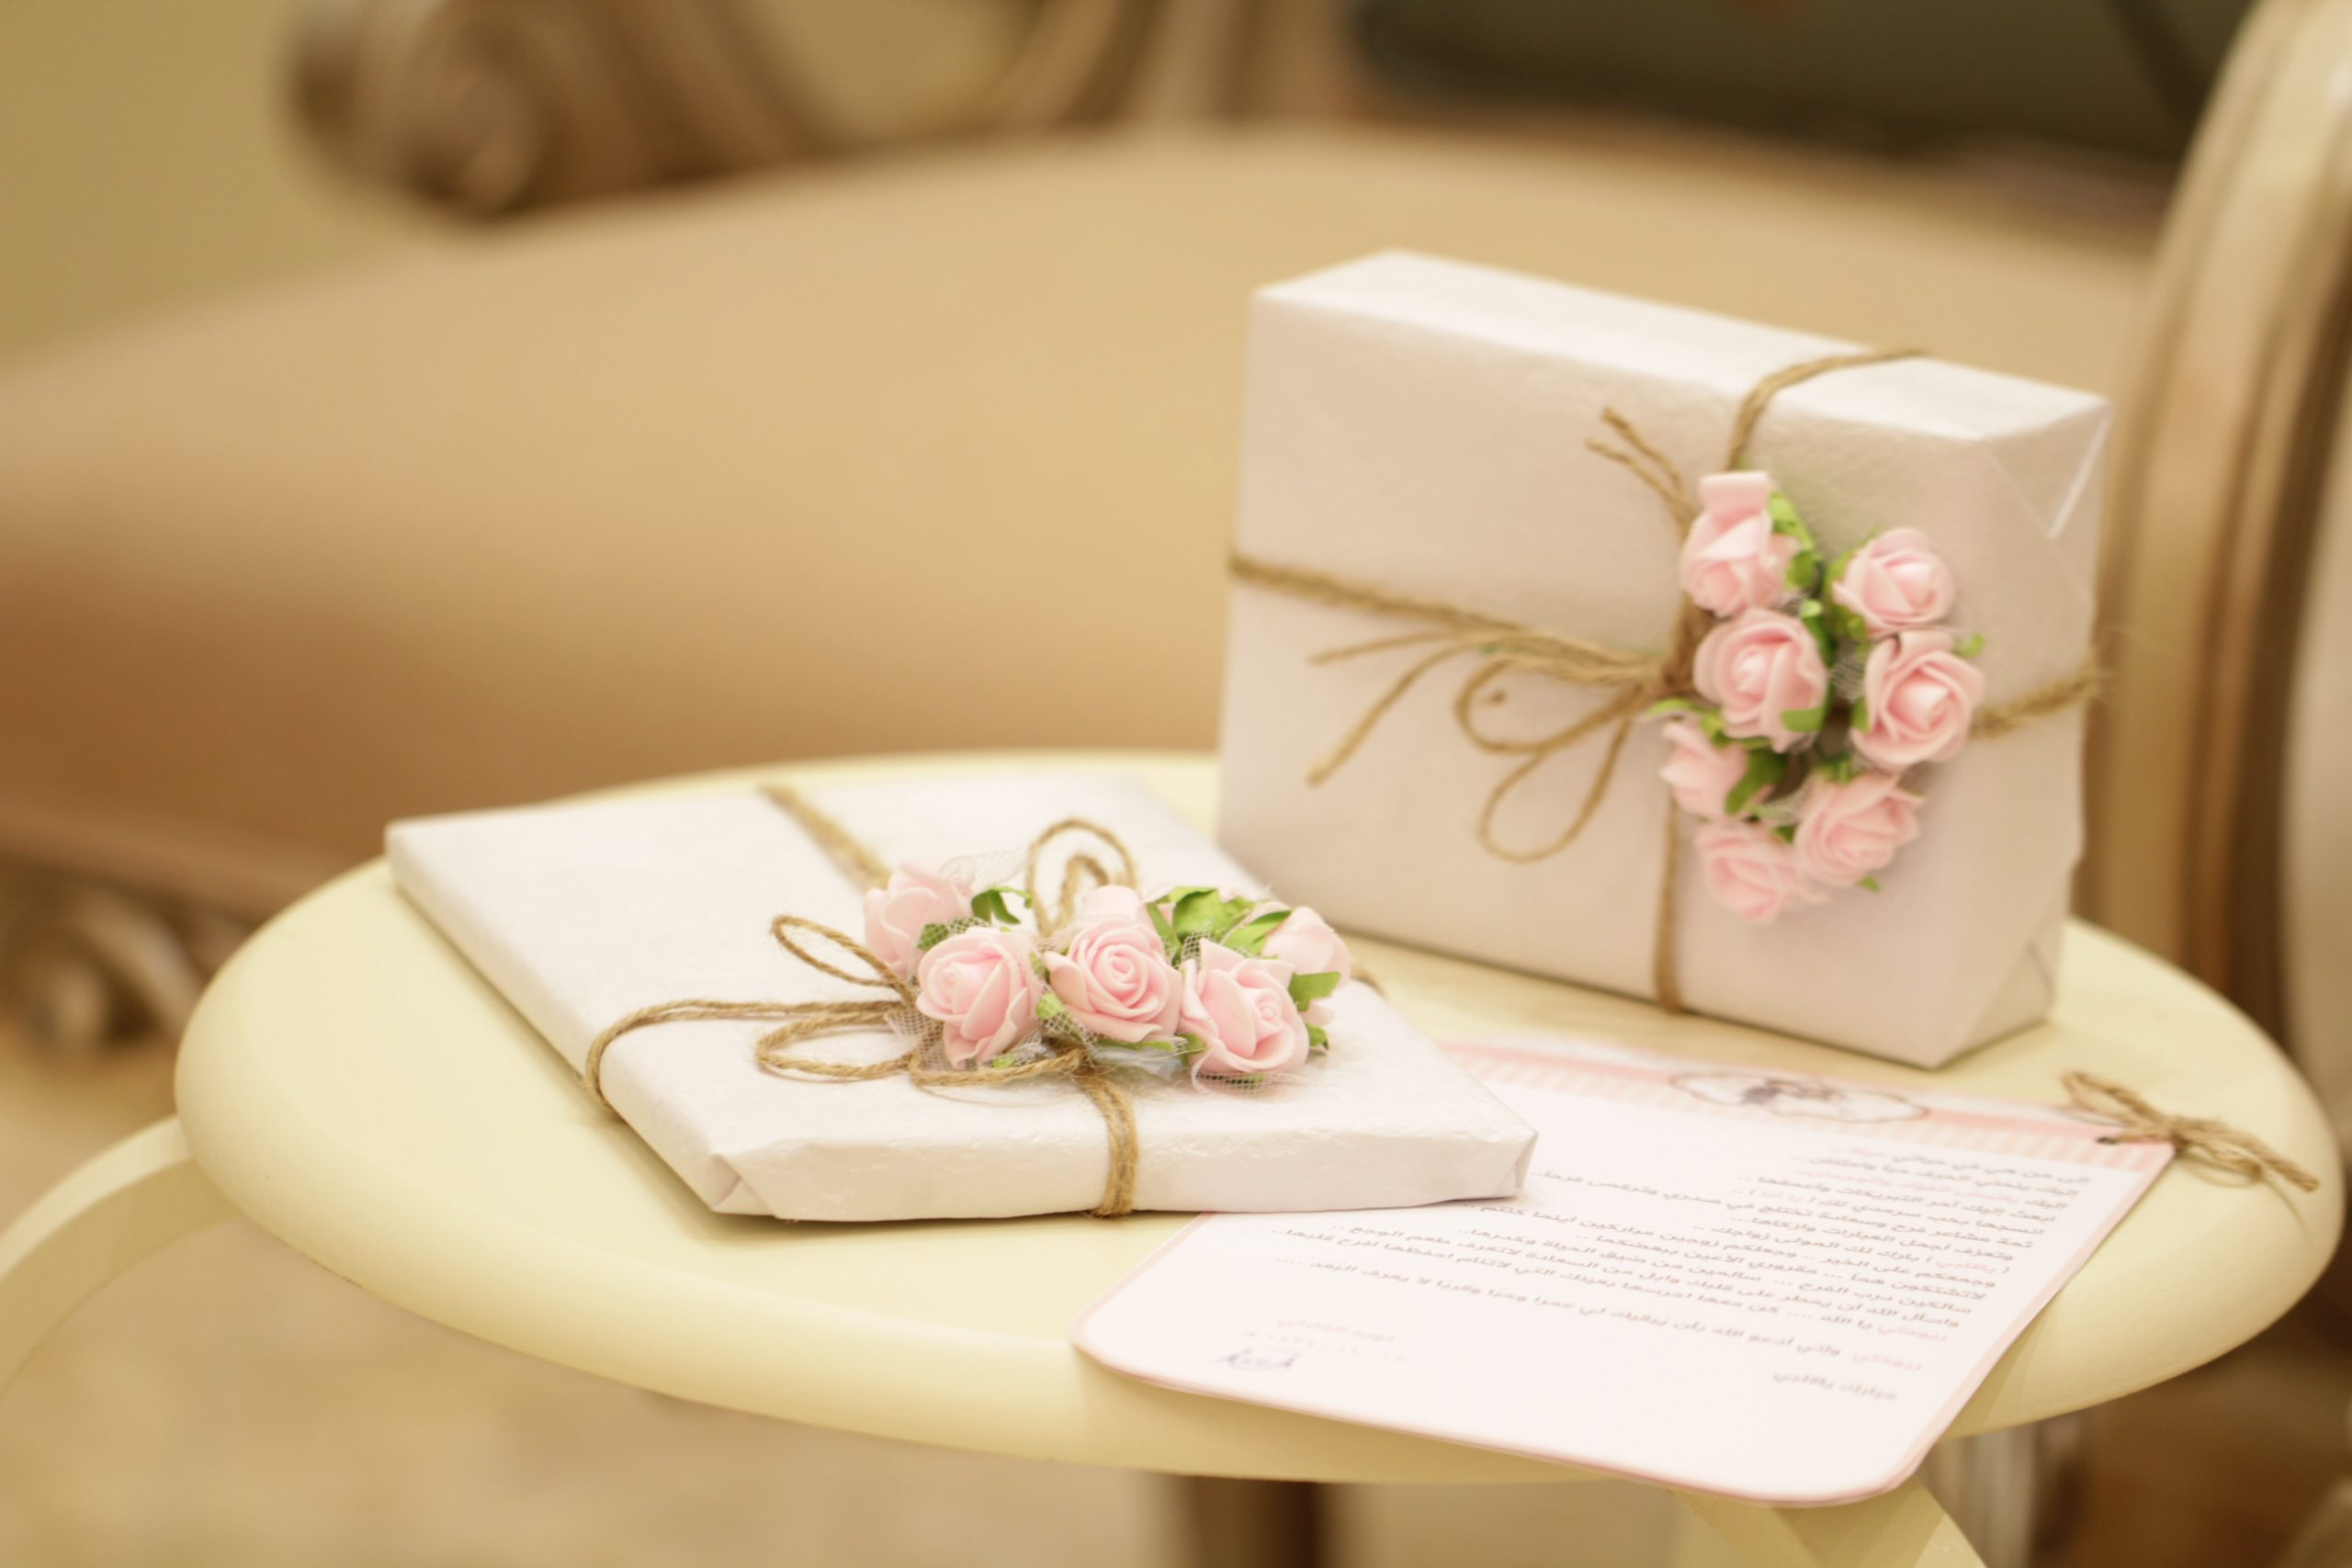 Wedding gifts for loved ones